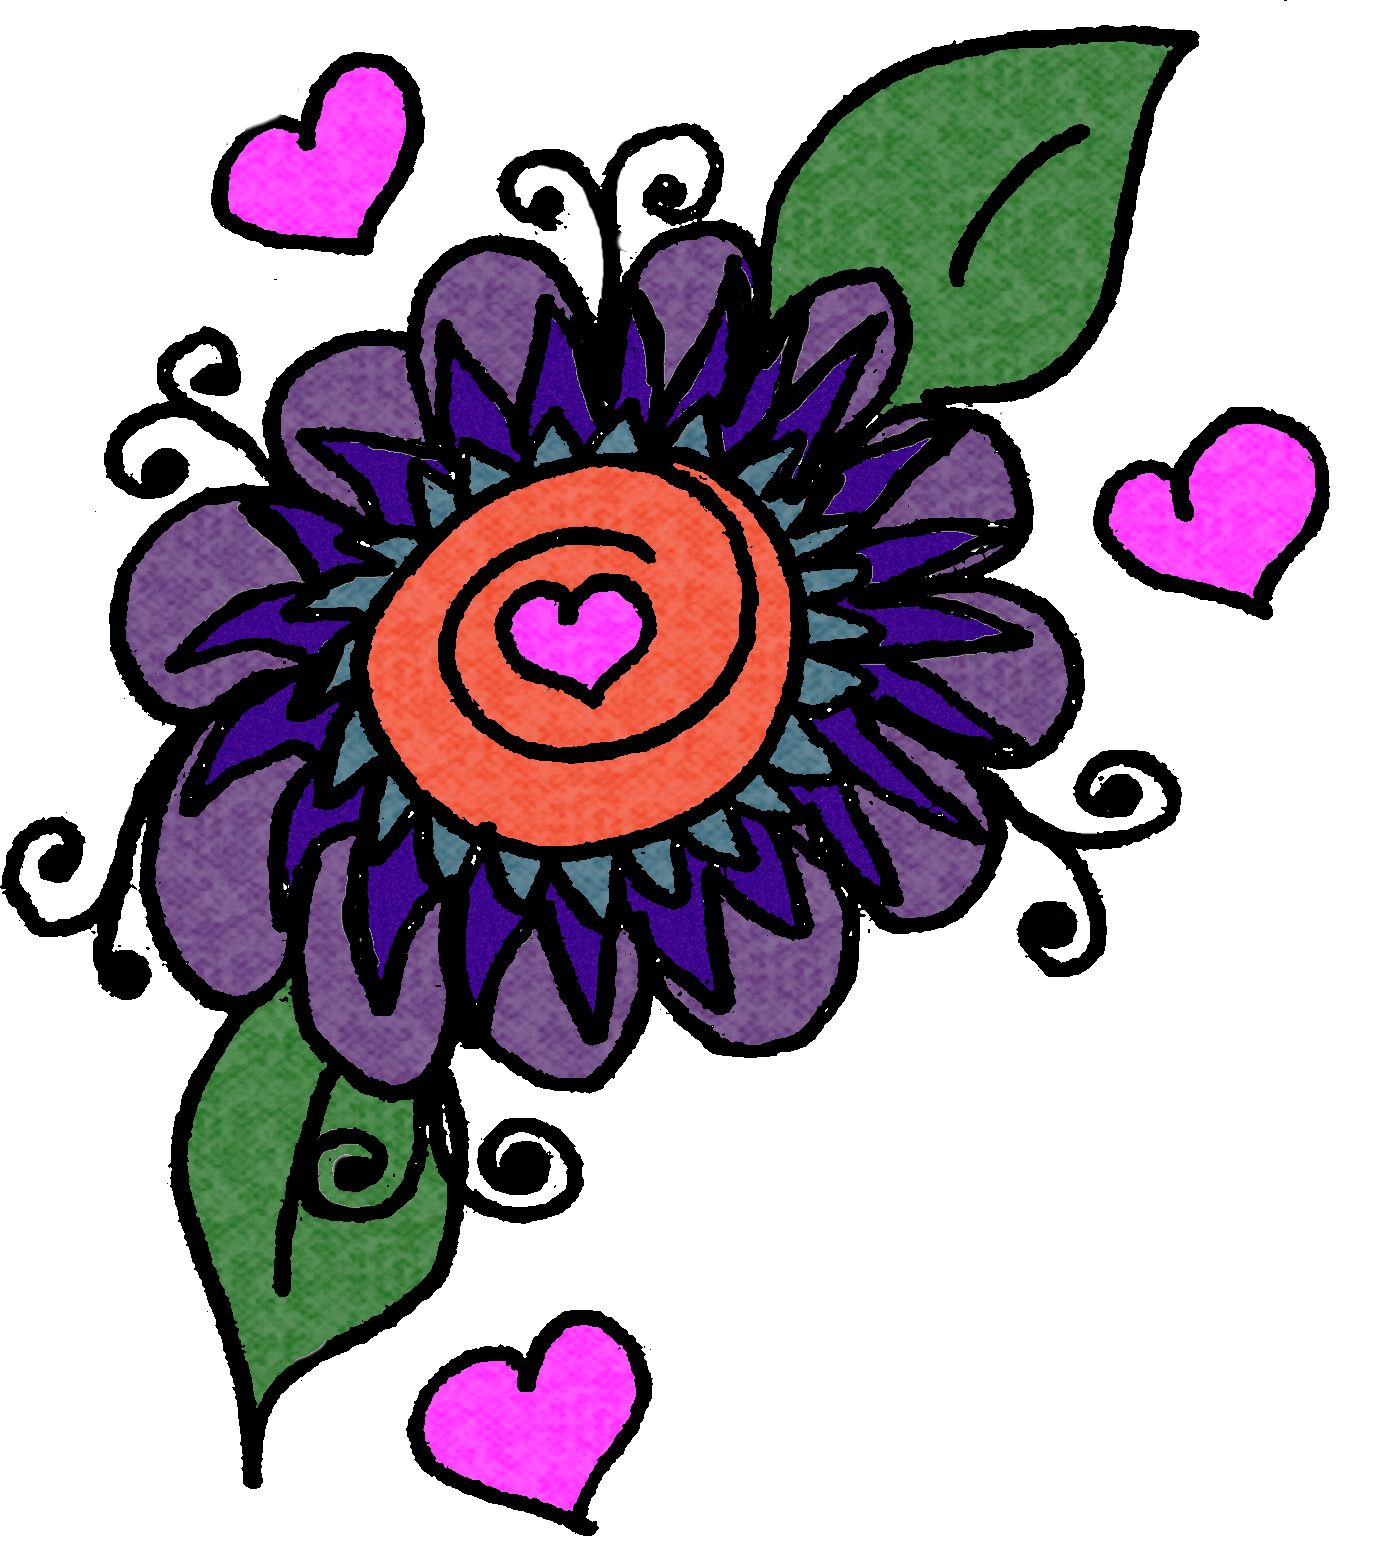 Christian Images In My Treasure Box: Home Drawn Flower Design